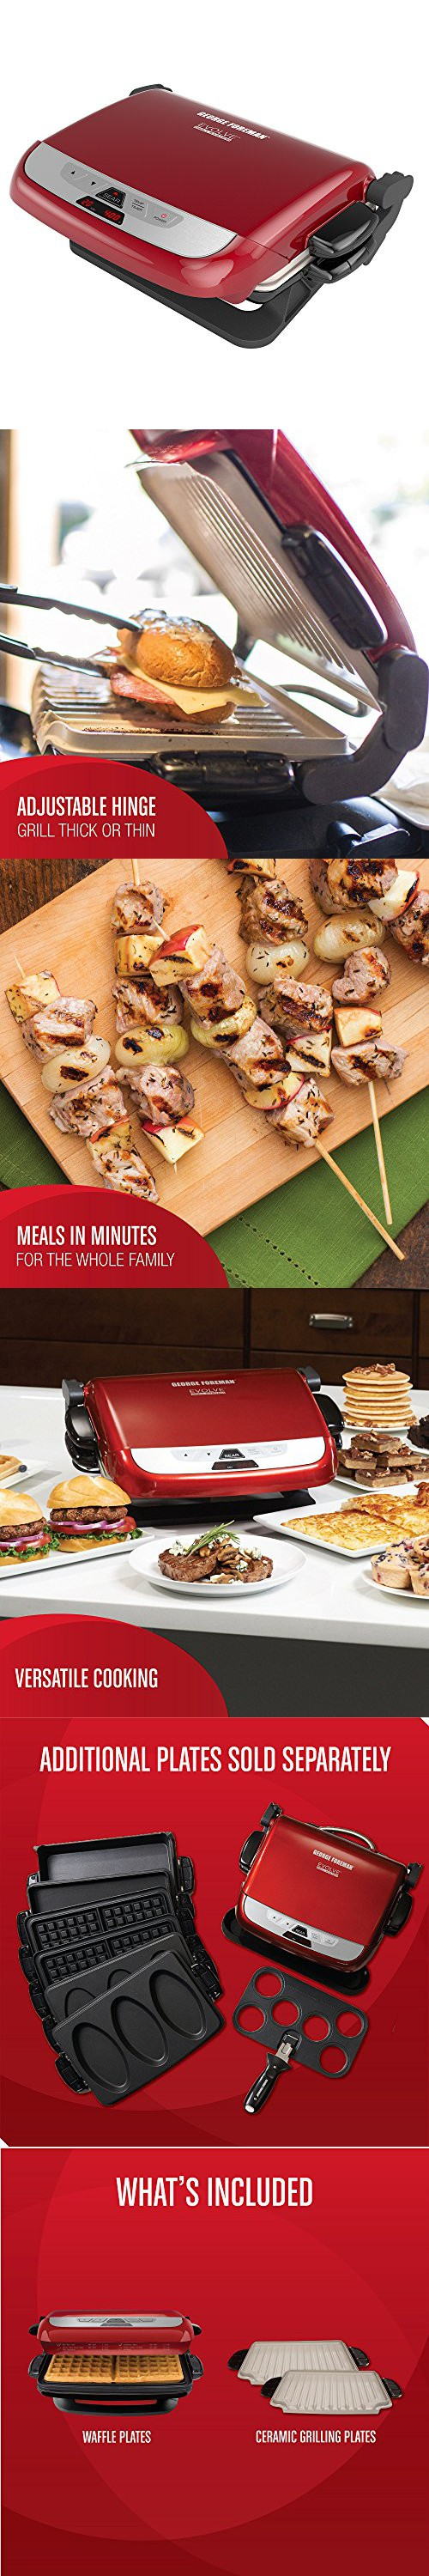 George Foreman Multi-Plate Evolve Grill (Ceramic Grilling Plates Deep-Dish Bake Pan and Muffin Pan Included) Red & George Foreman GRP4842RB Multi-Plate Evolve Grill (Panini Press ...